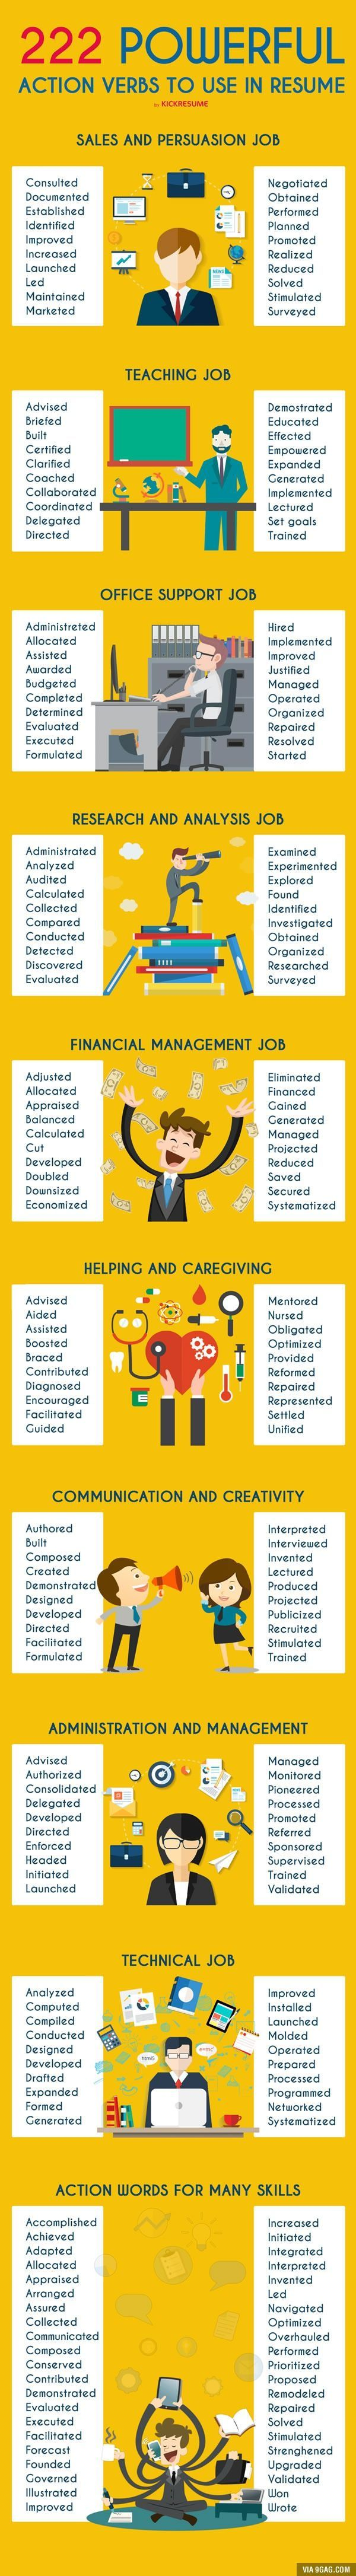 best ideas about resume skills resume interview resume cheat sheet 222 action verbs to use in your new resume